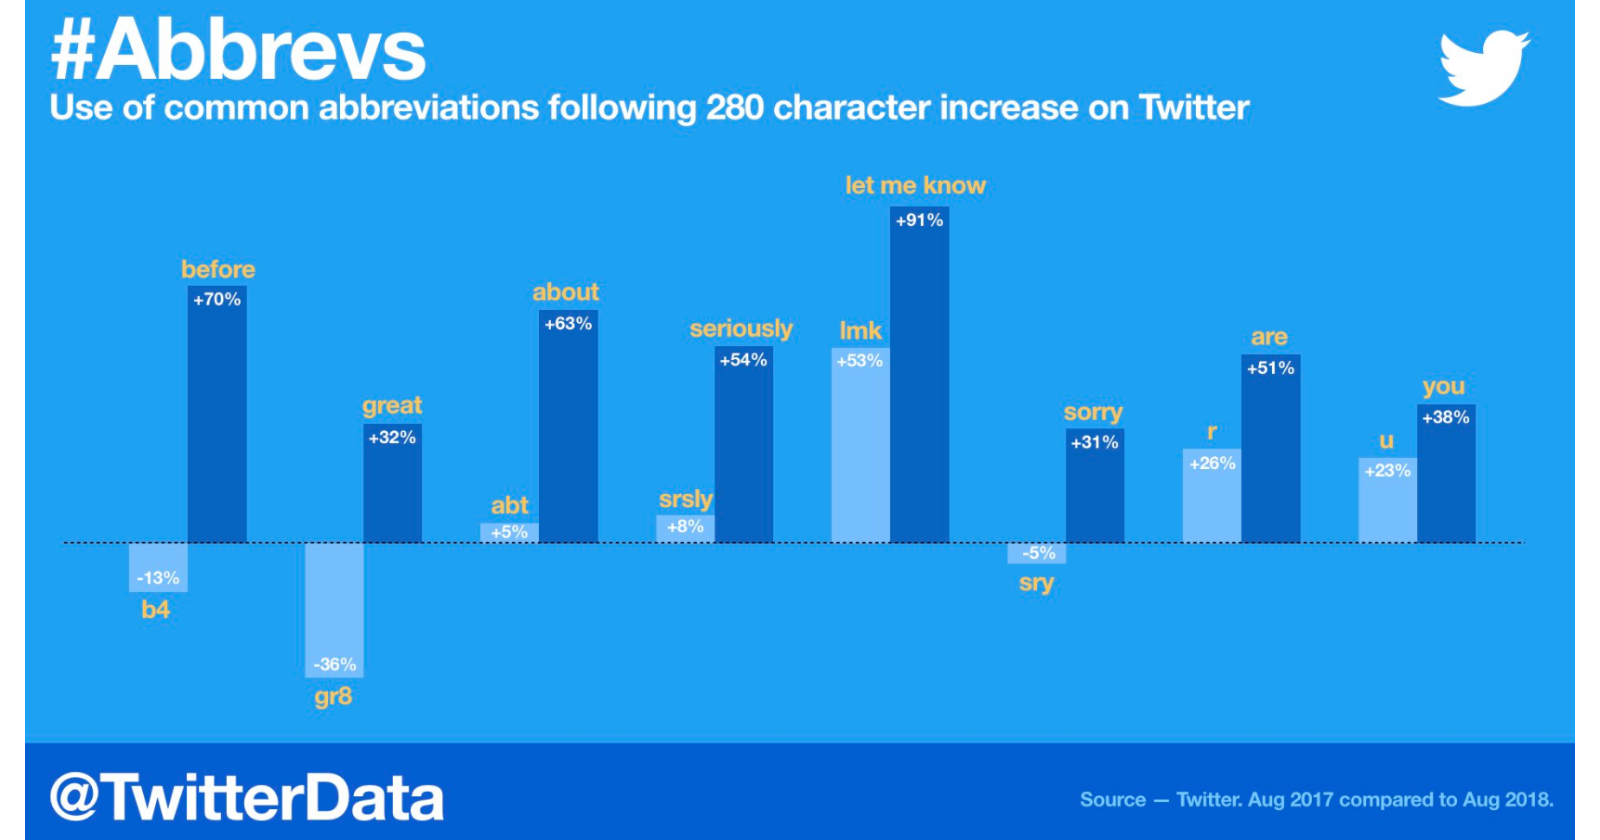 Twitter Doubling its Character Limit from 140 to 280 Has Led to More Polite Users